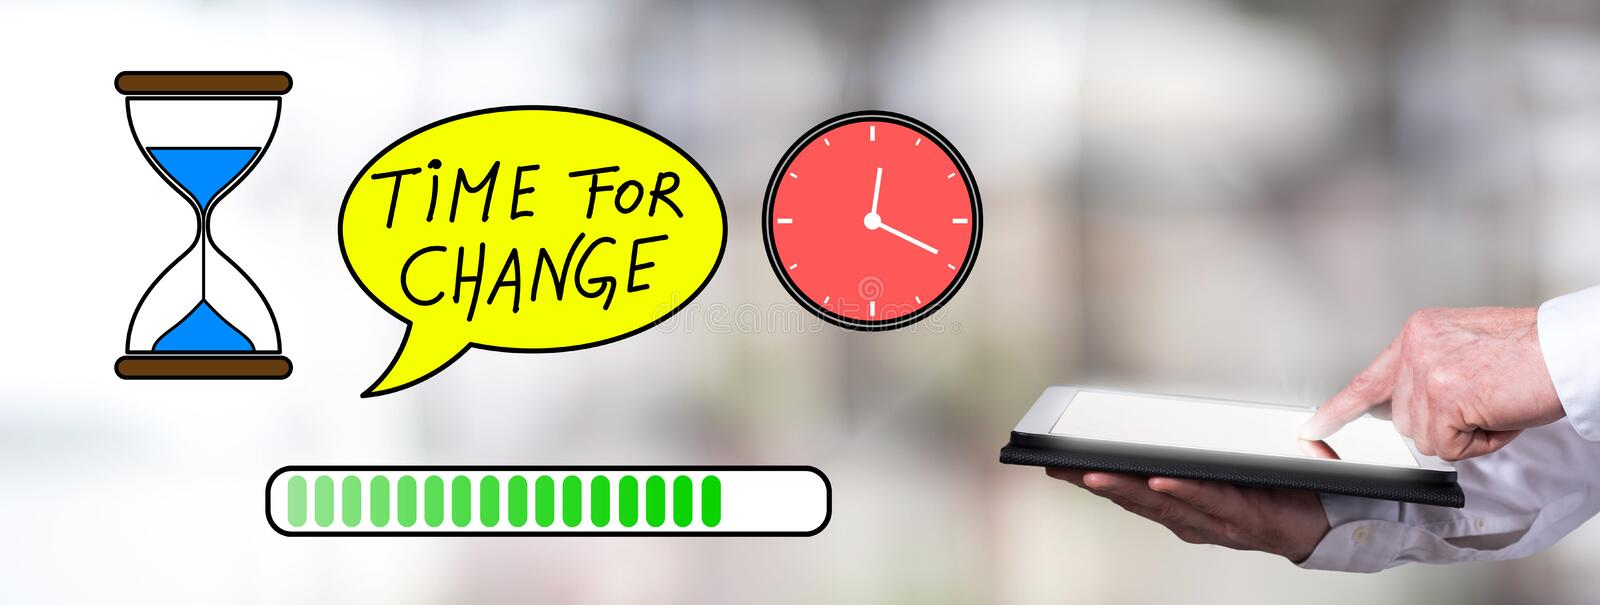 Time for change concept with man using a tablet royalty free stock image